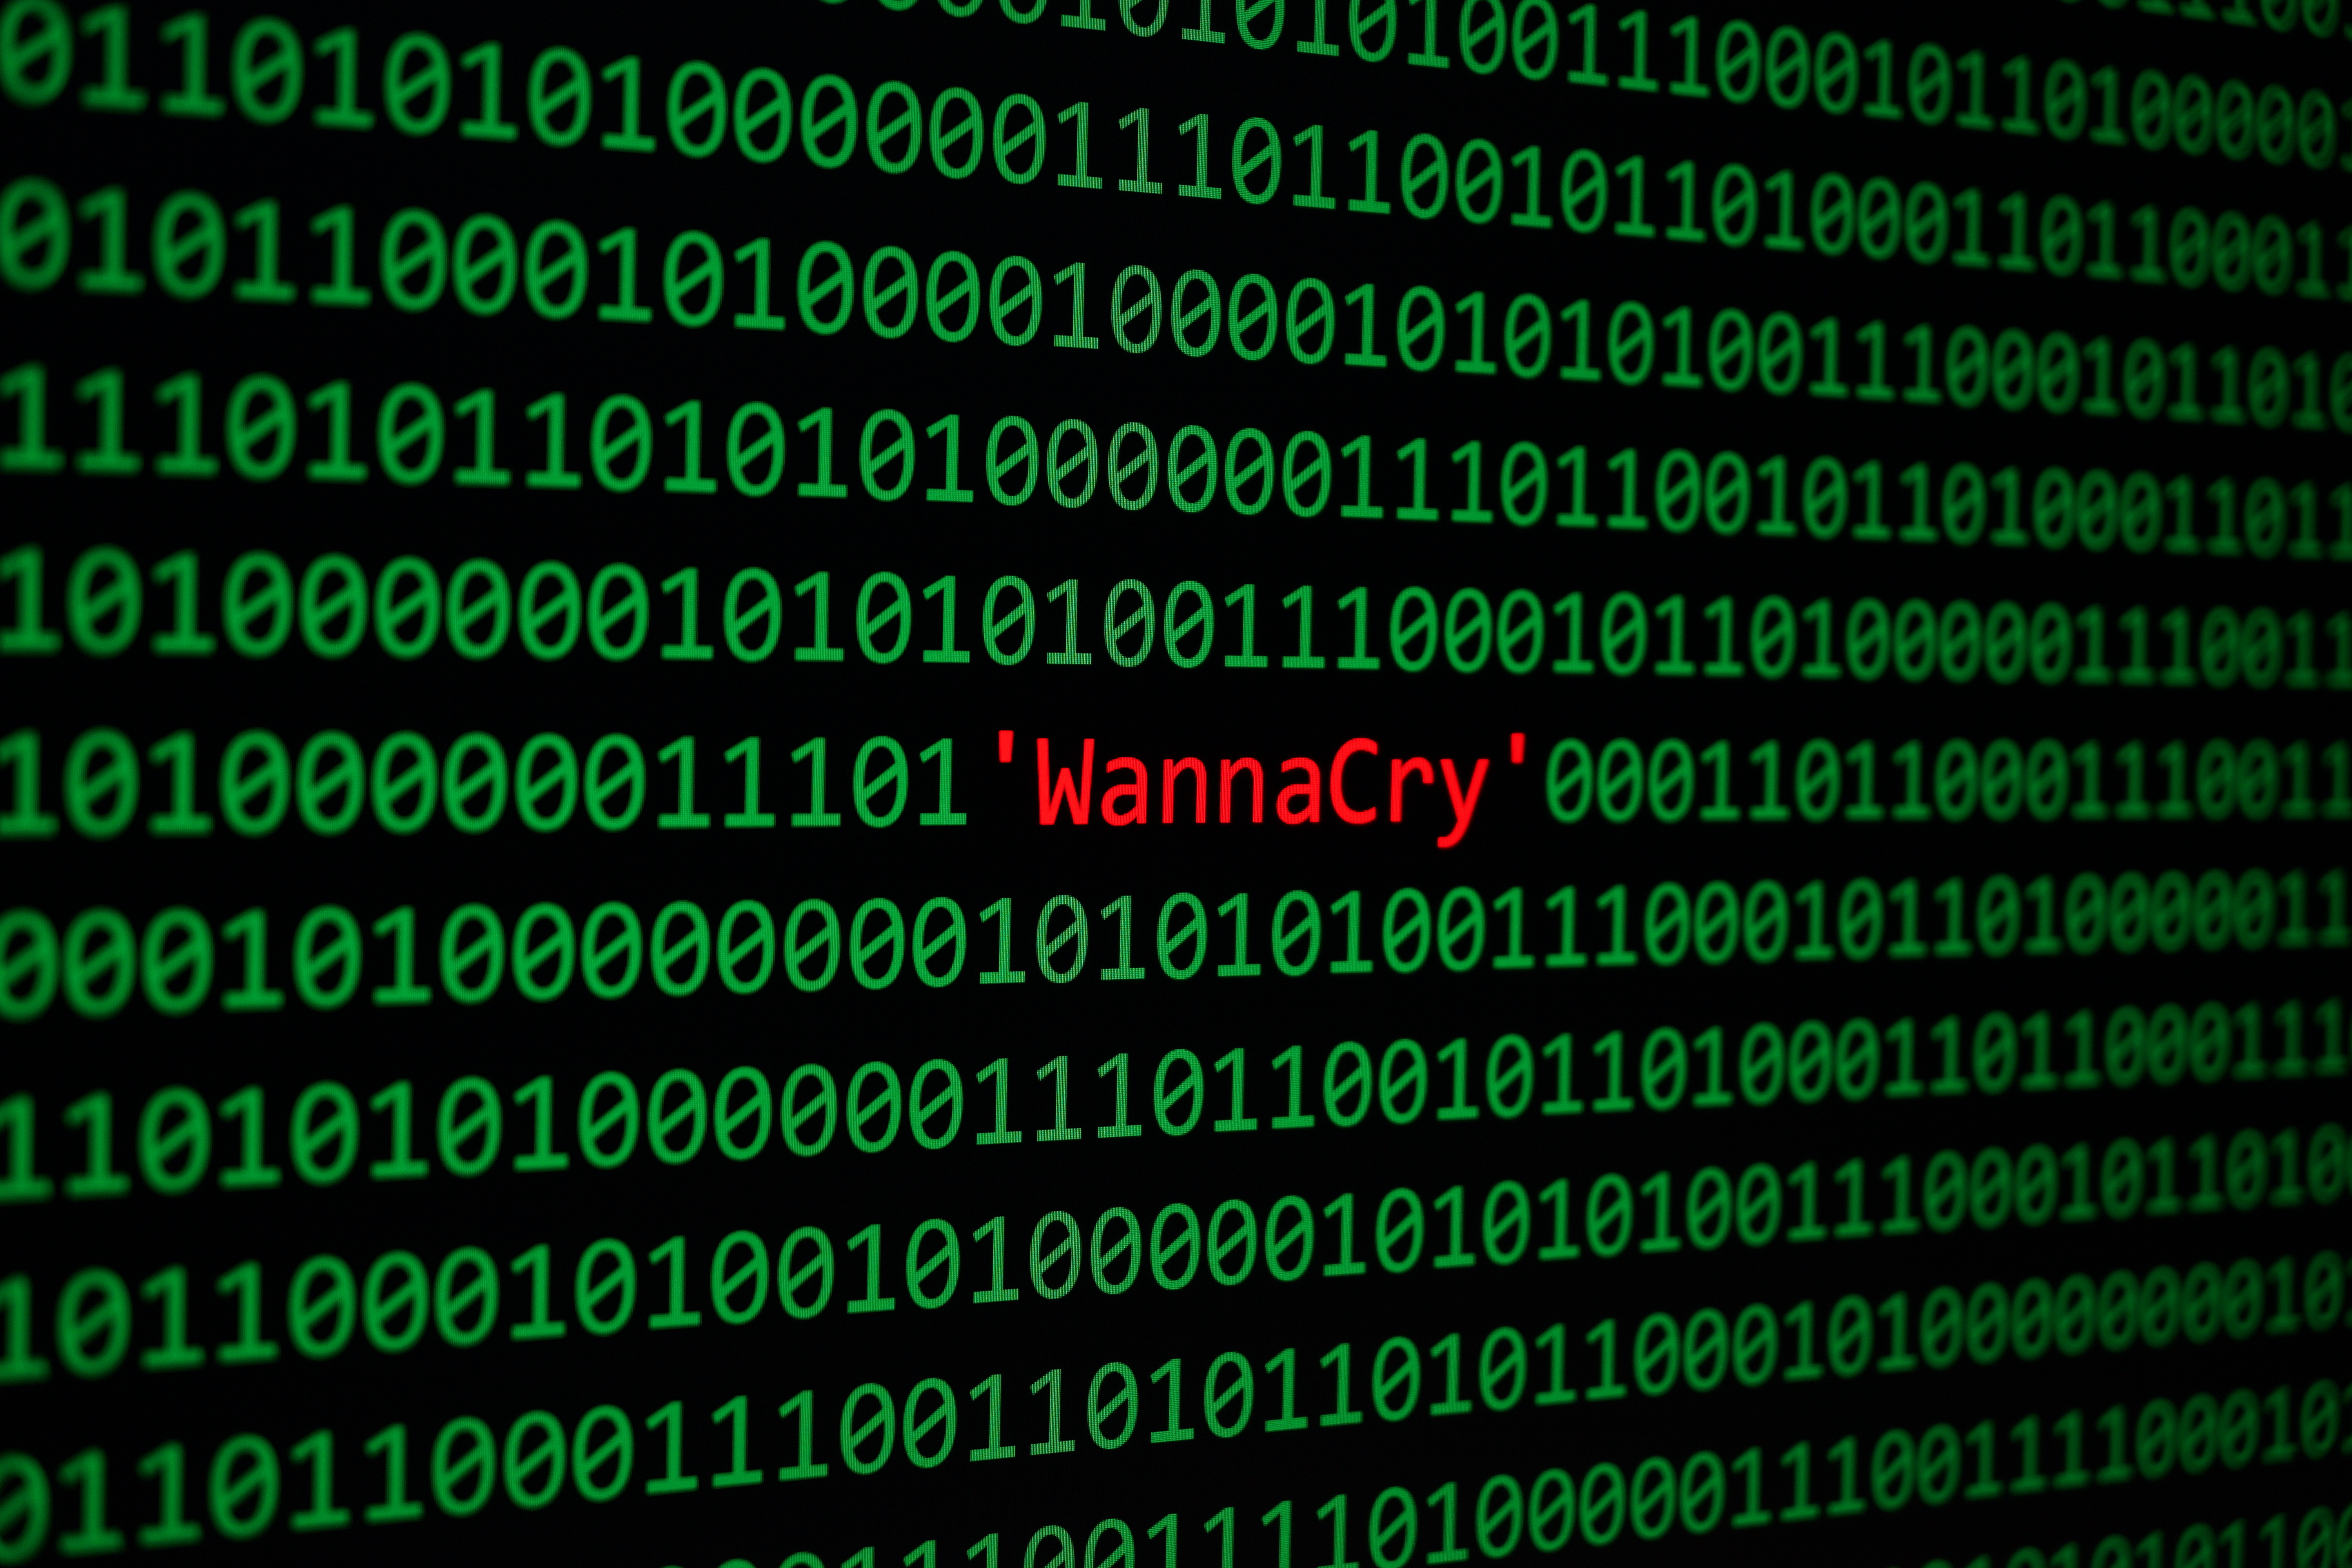 U.S. Government Blames North Korea for WannaCry